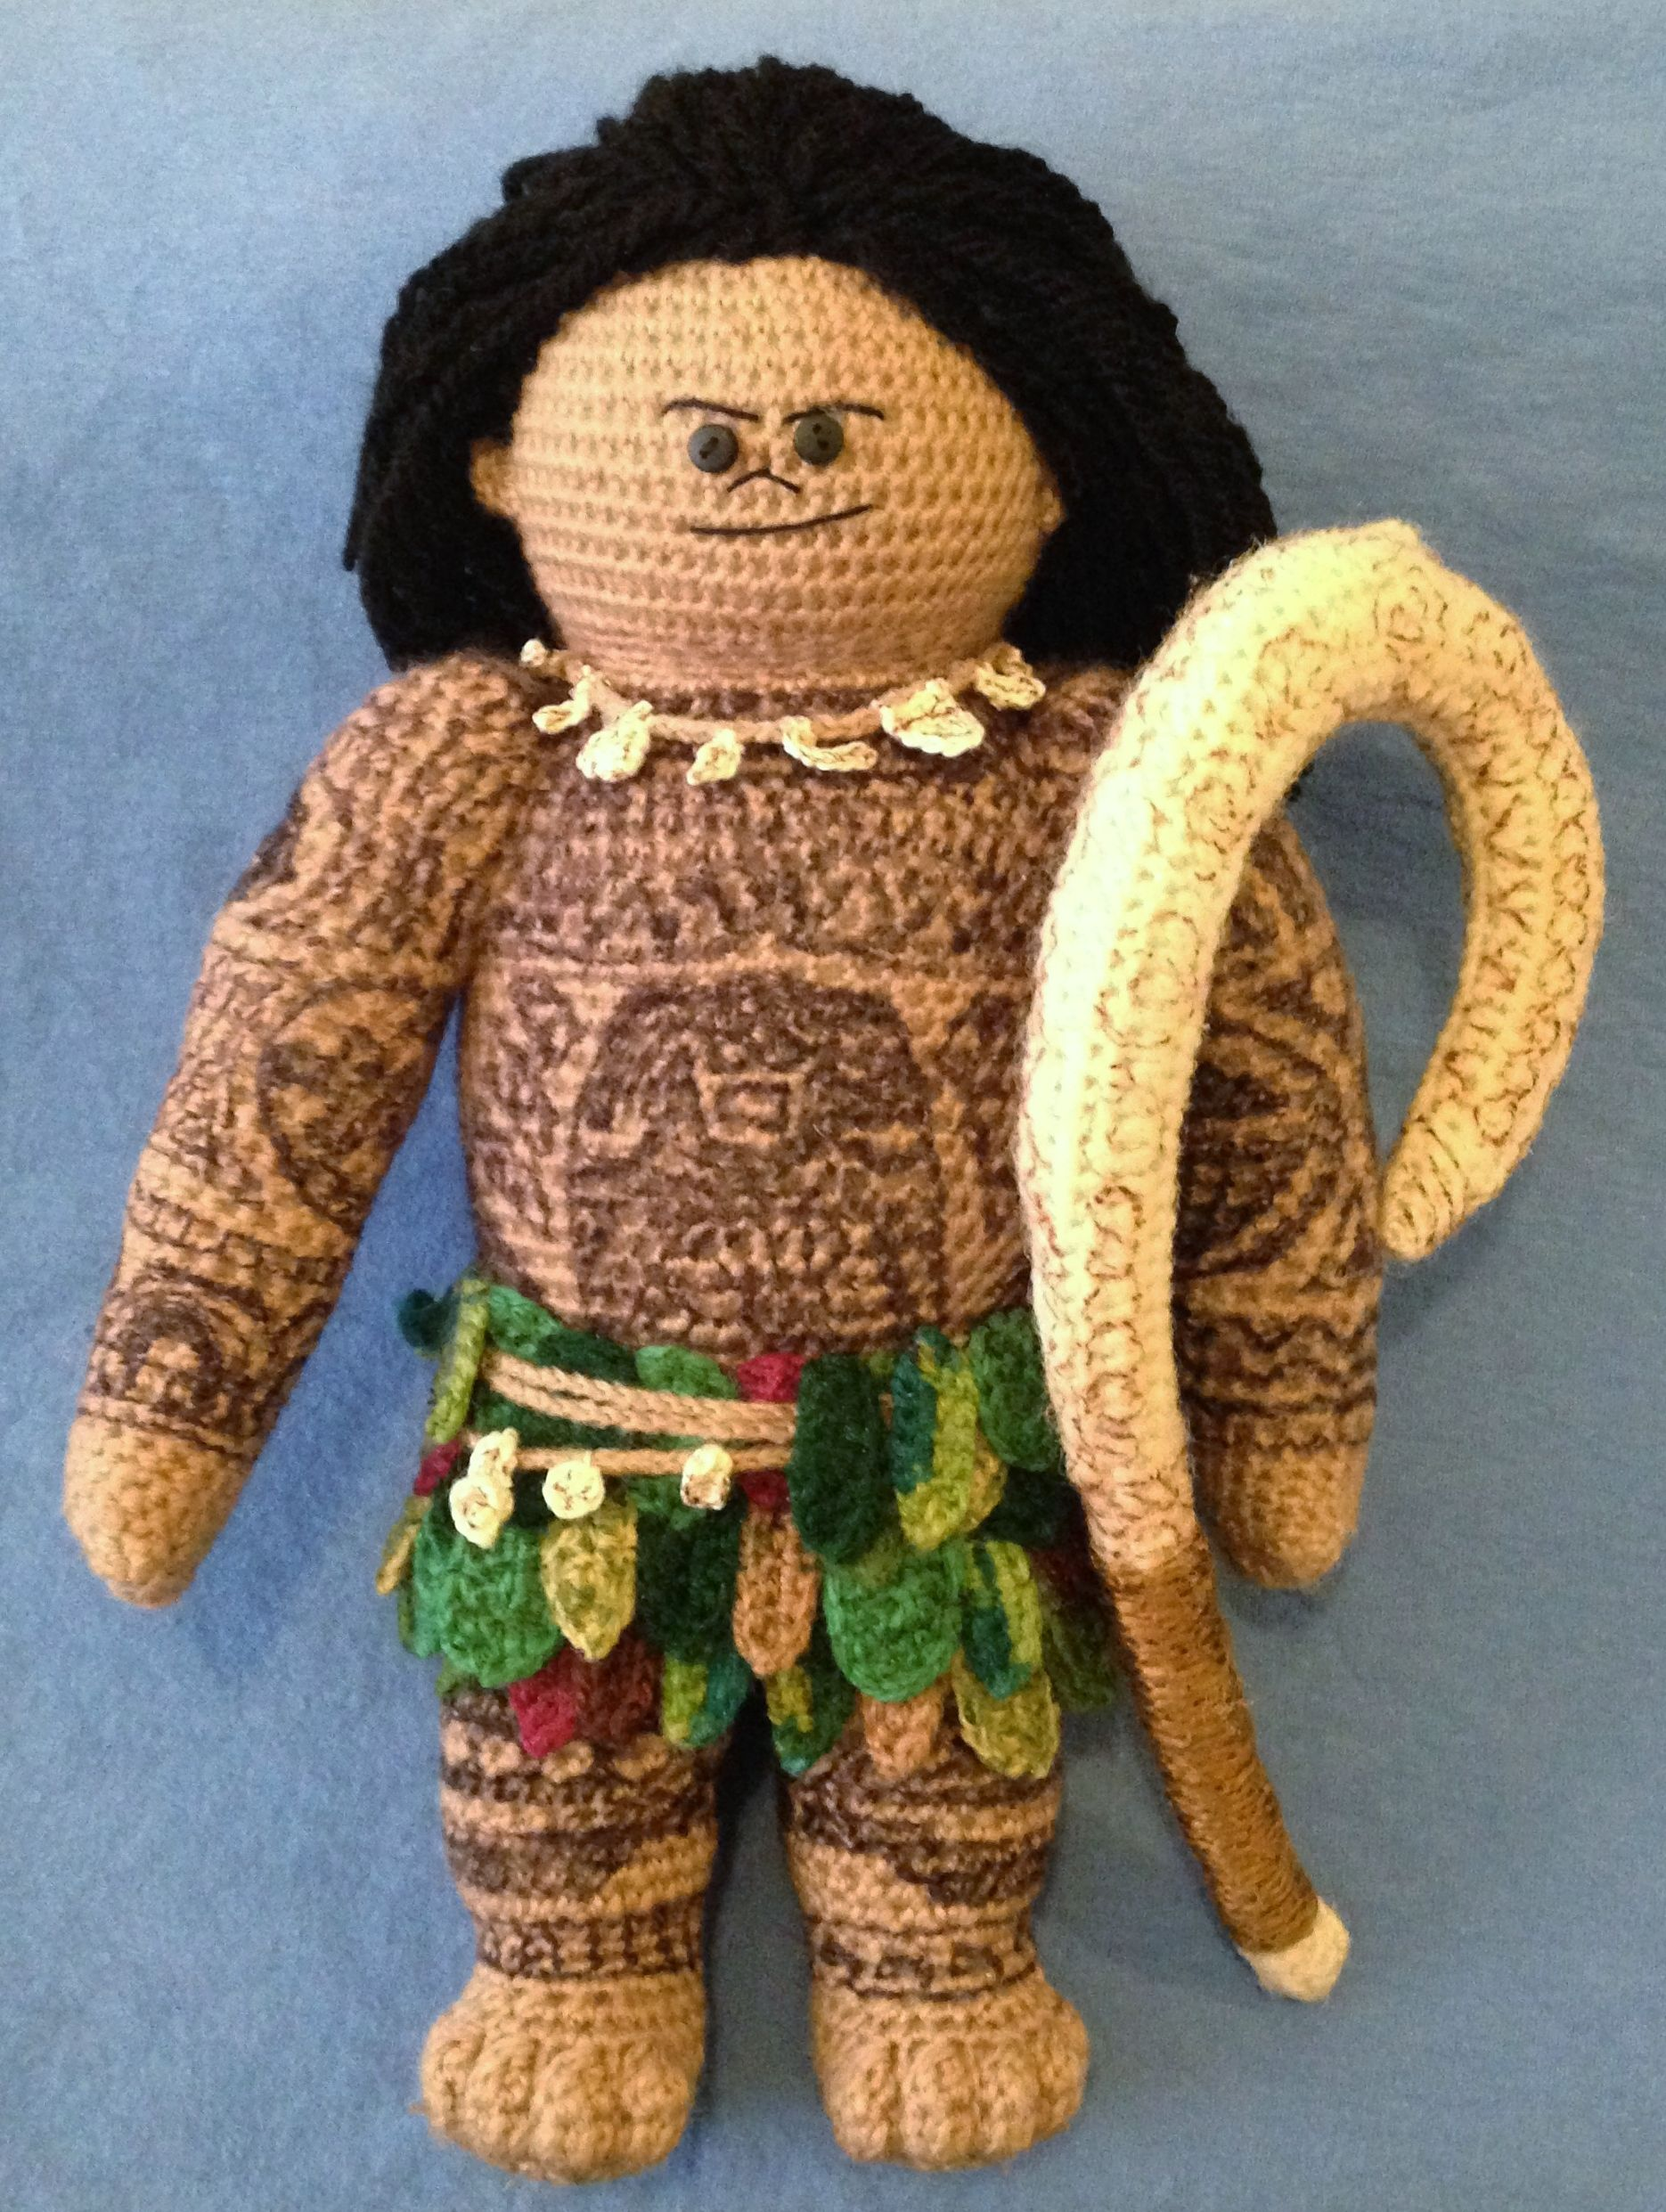 Amigurumi Disney Characters : Crocheted quot maui doll based on the character from moana